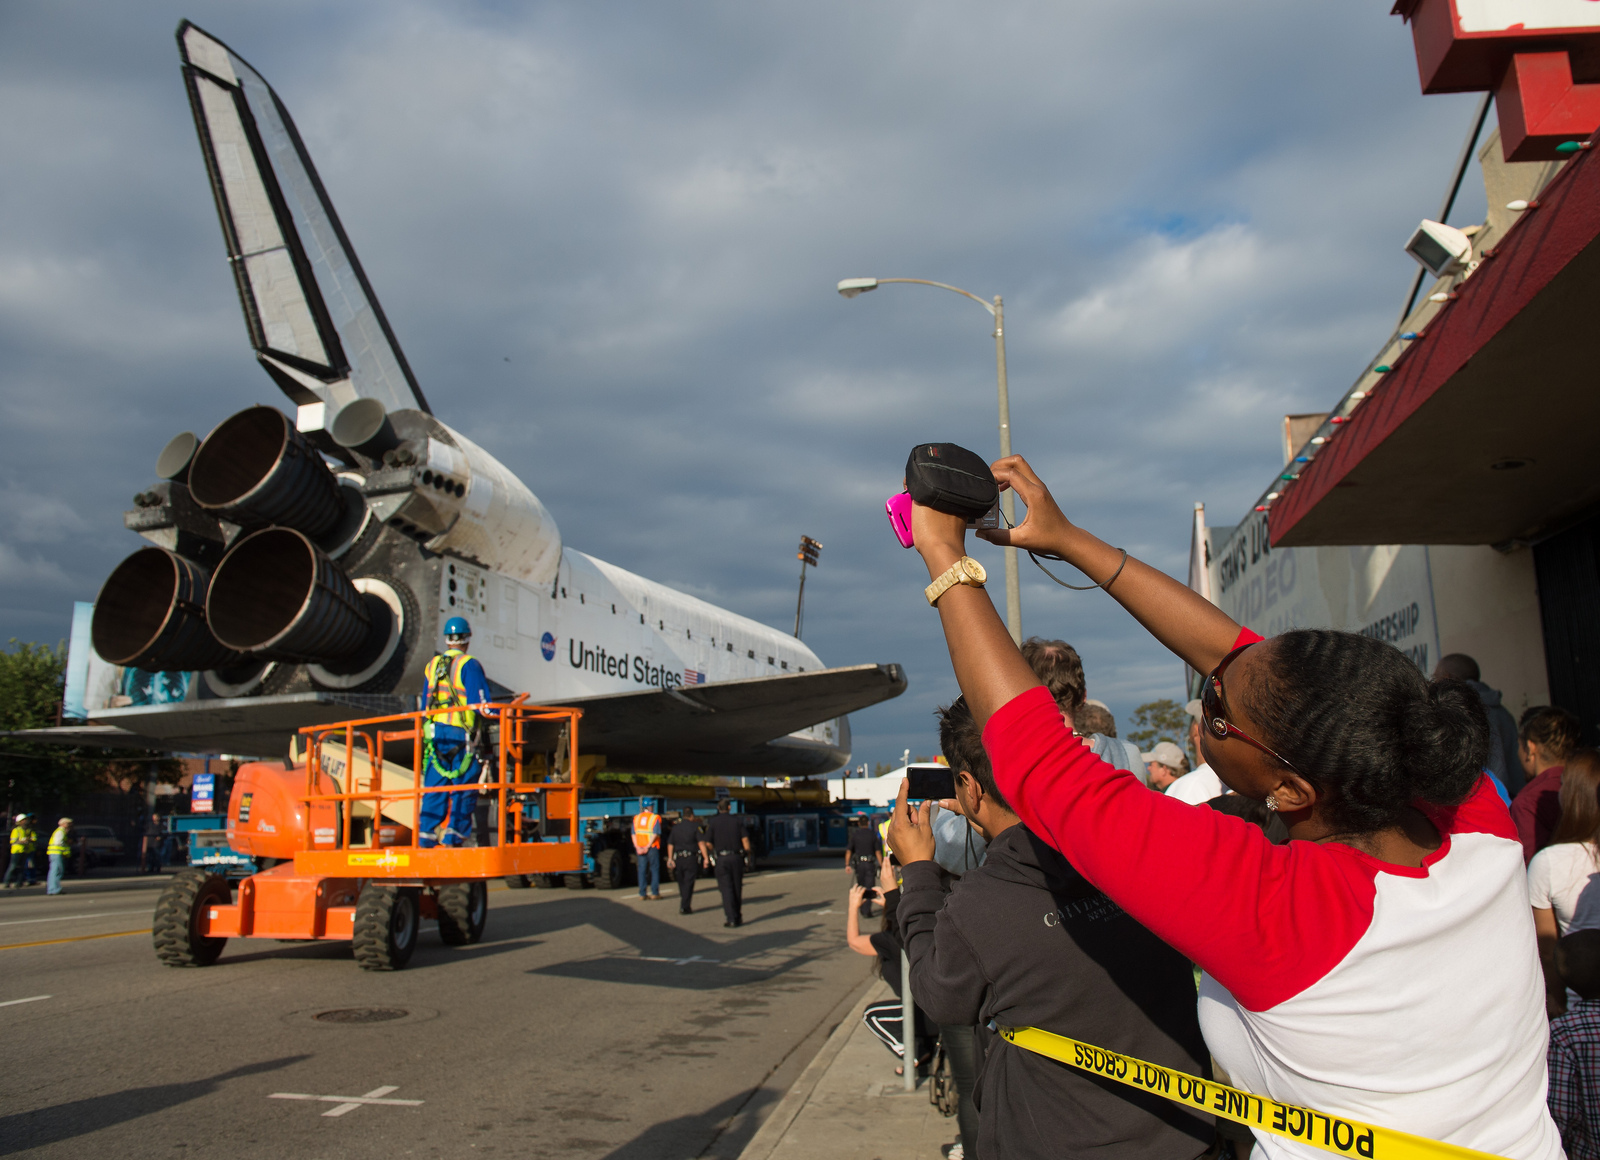 Spectators photograph shuttle Endeavour in Inglewood on Oct. 12, 2012.